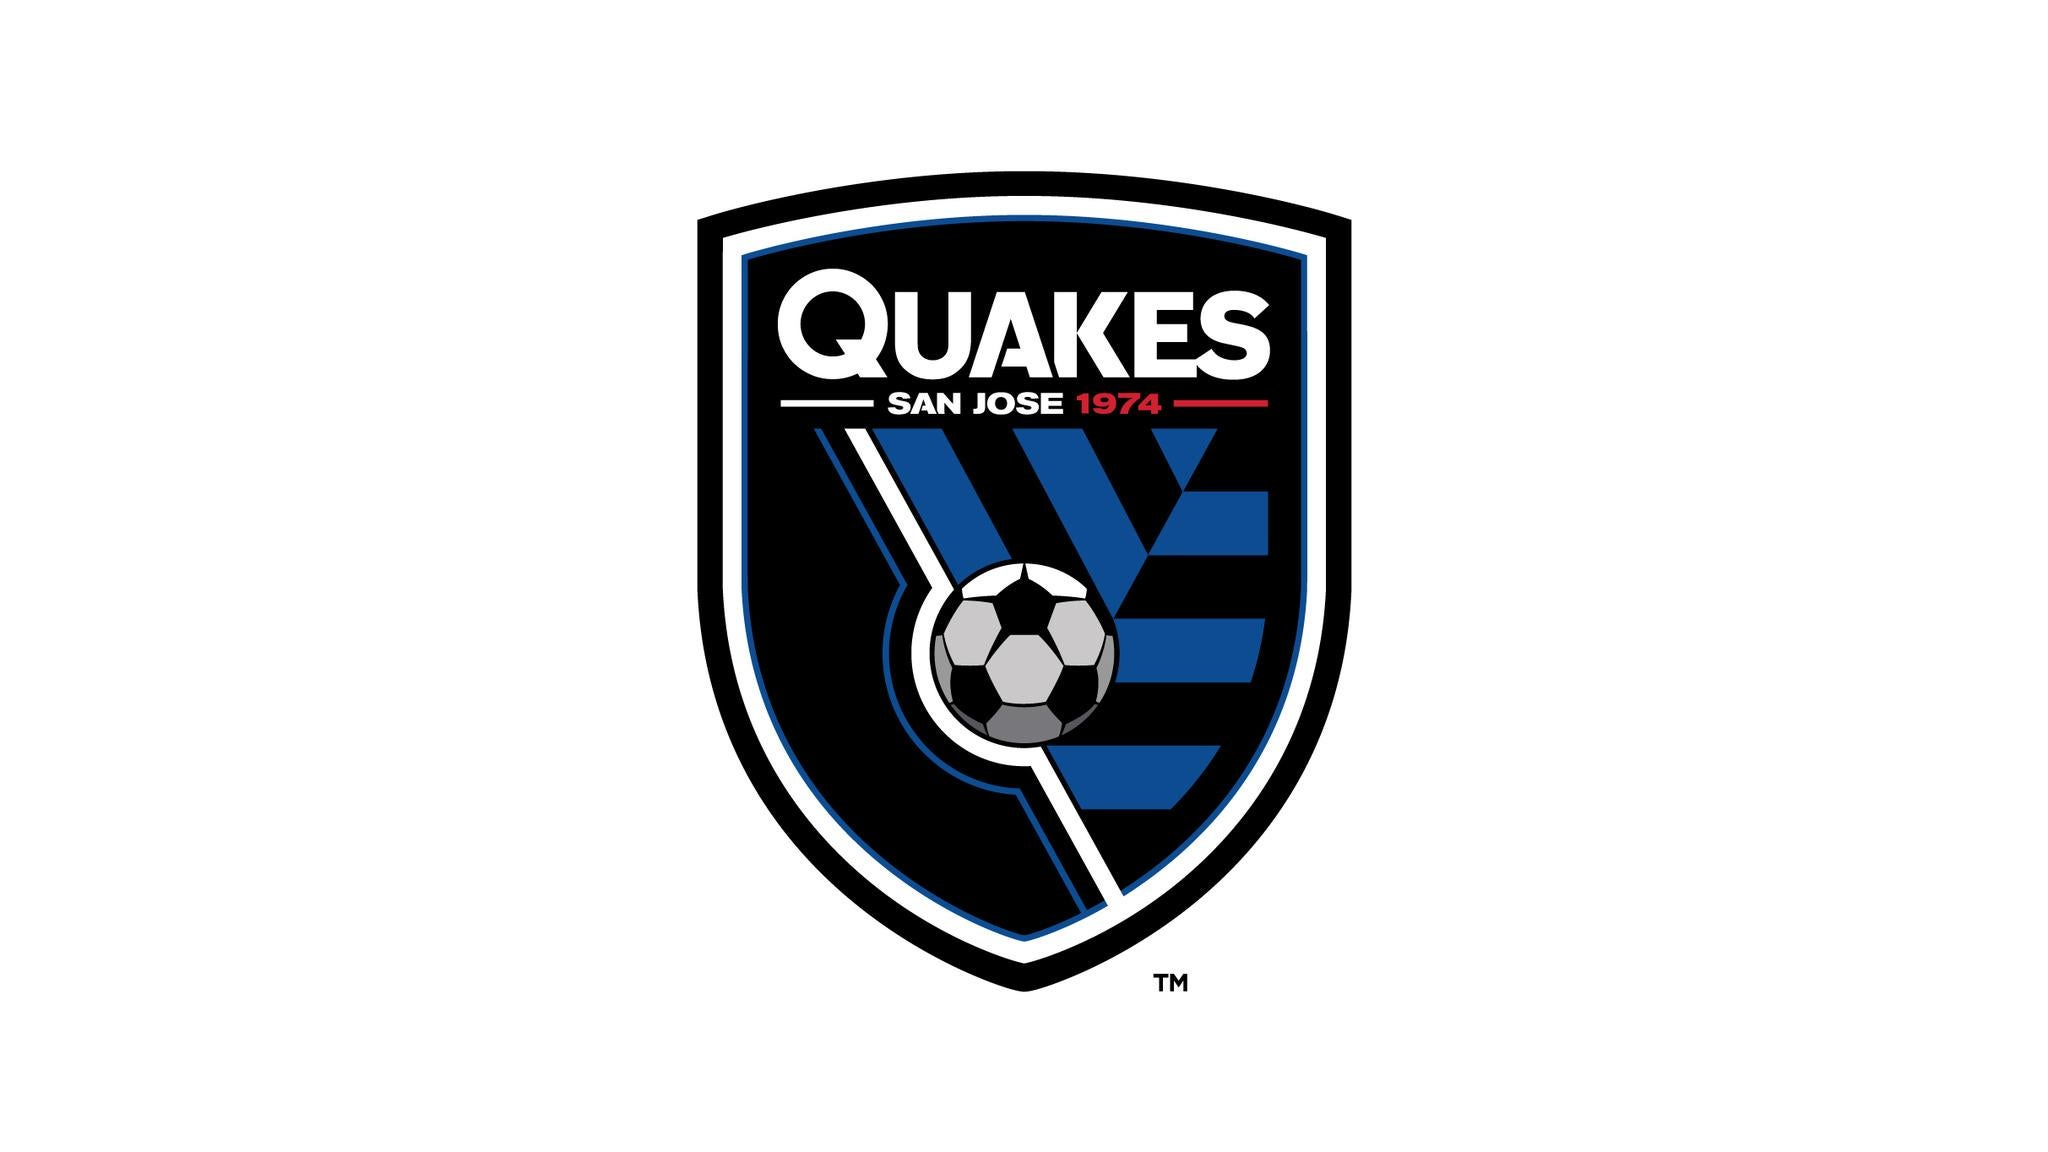 San Jose Earthquakes vs. LA Galaxy at Stanford Stadium